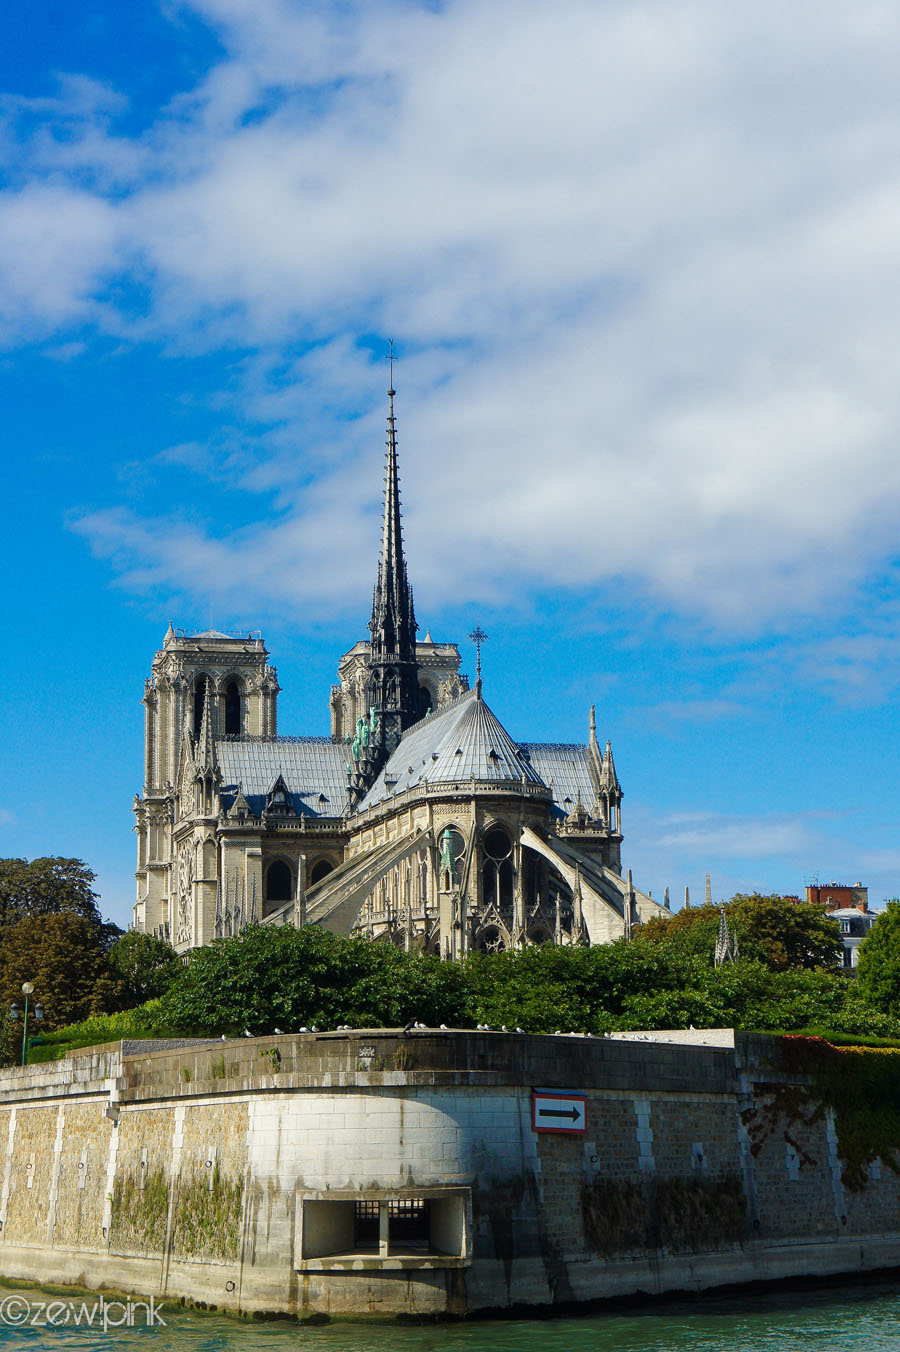 Wallpaper Wanderer: Notre Dame de Paris from the River